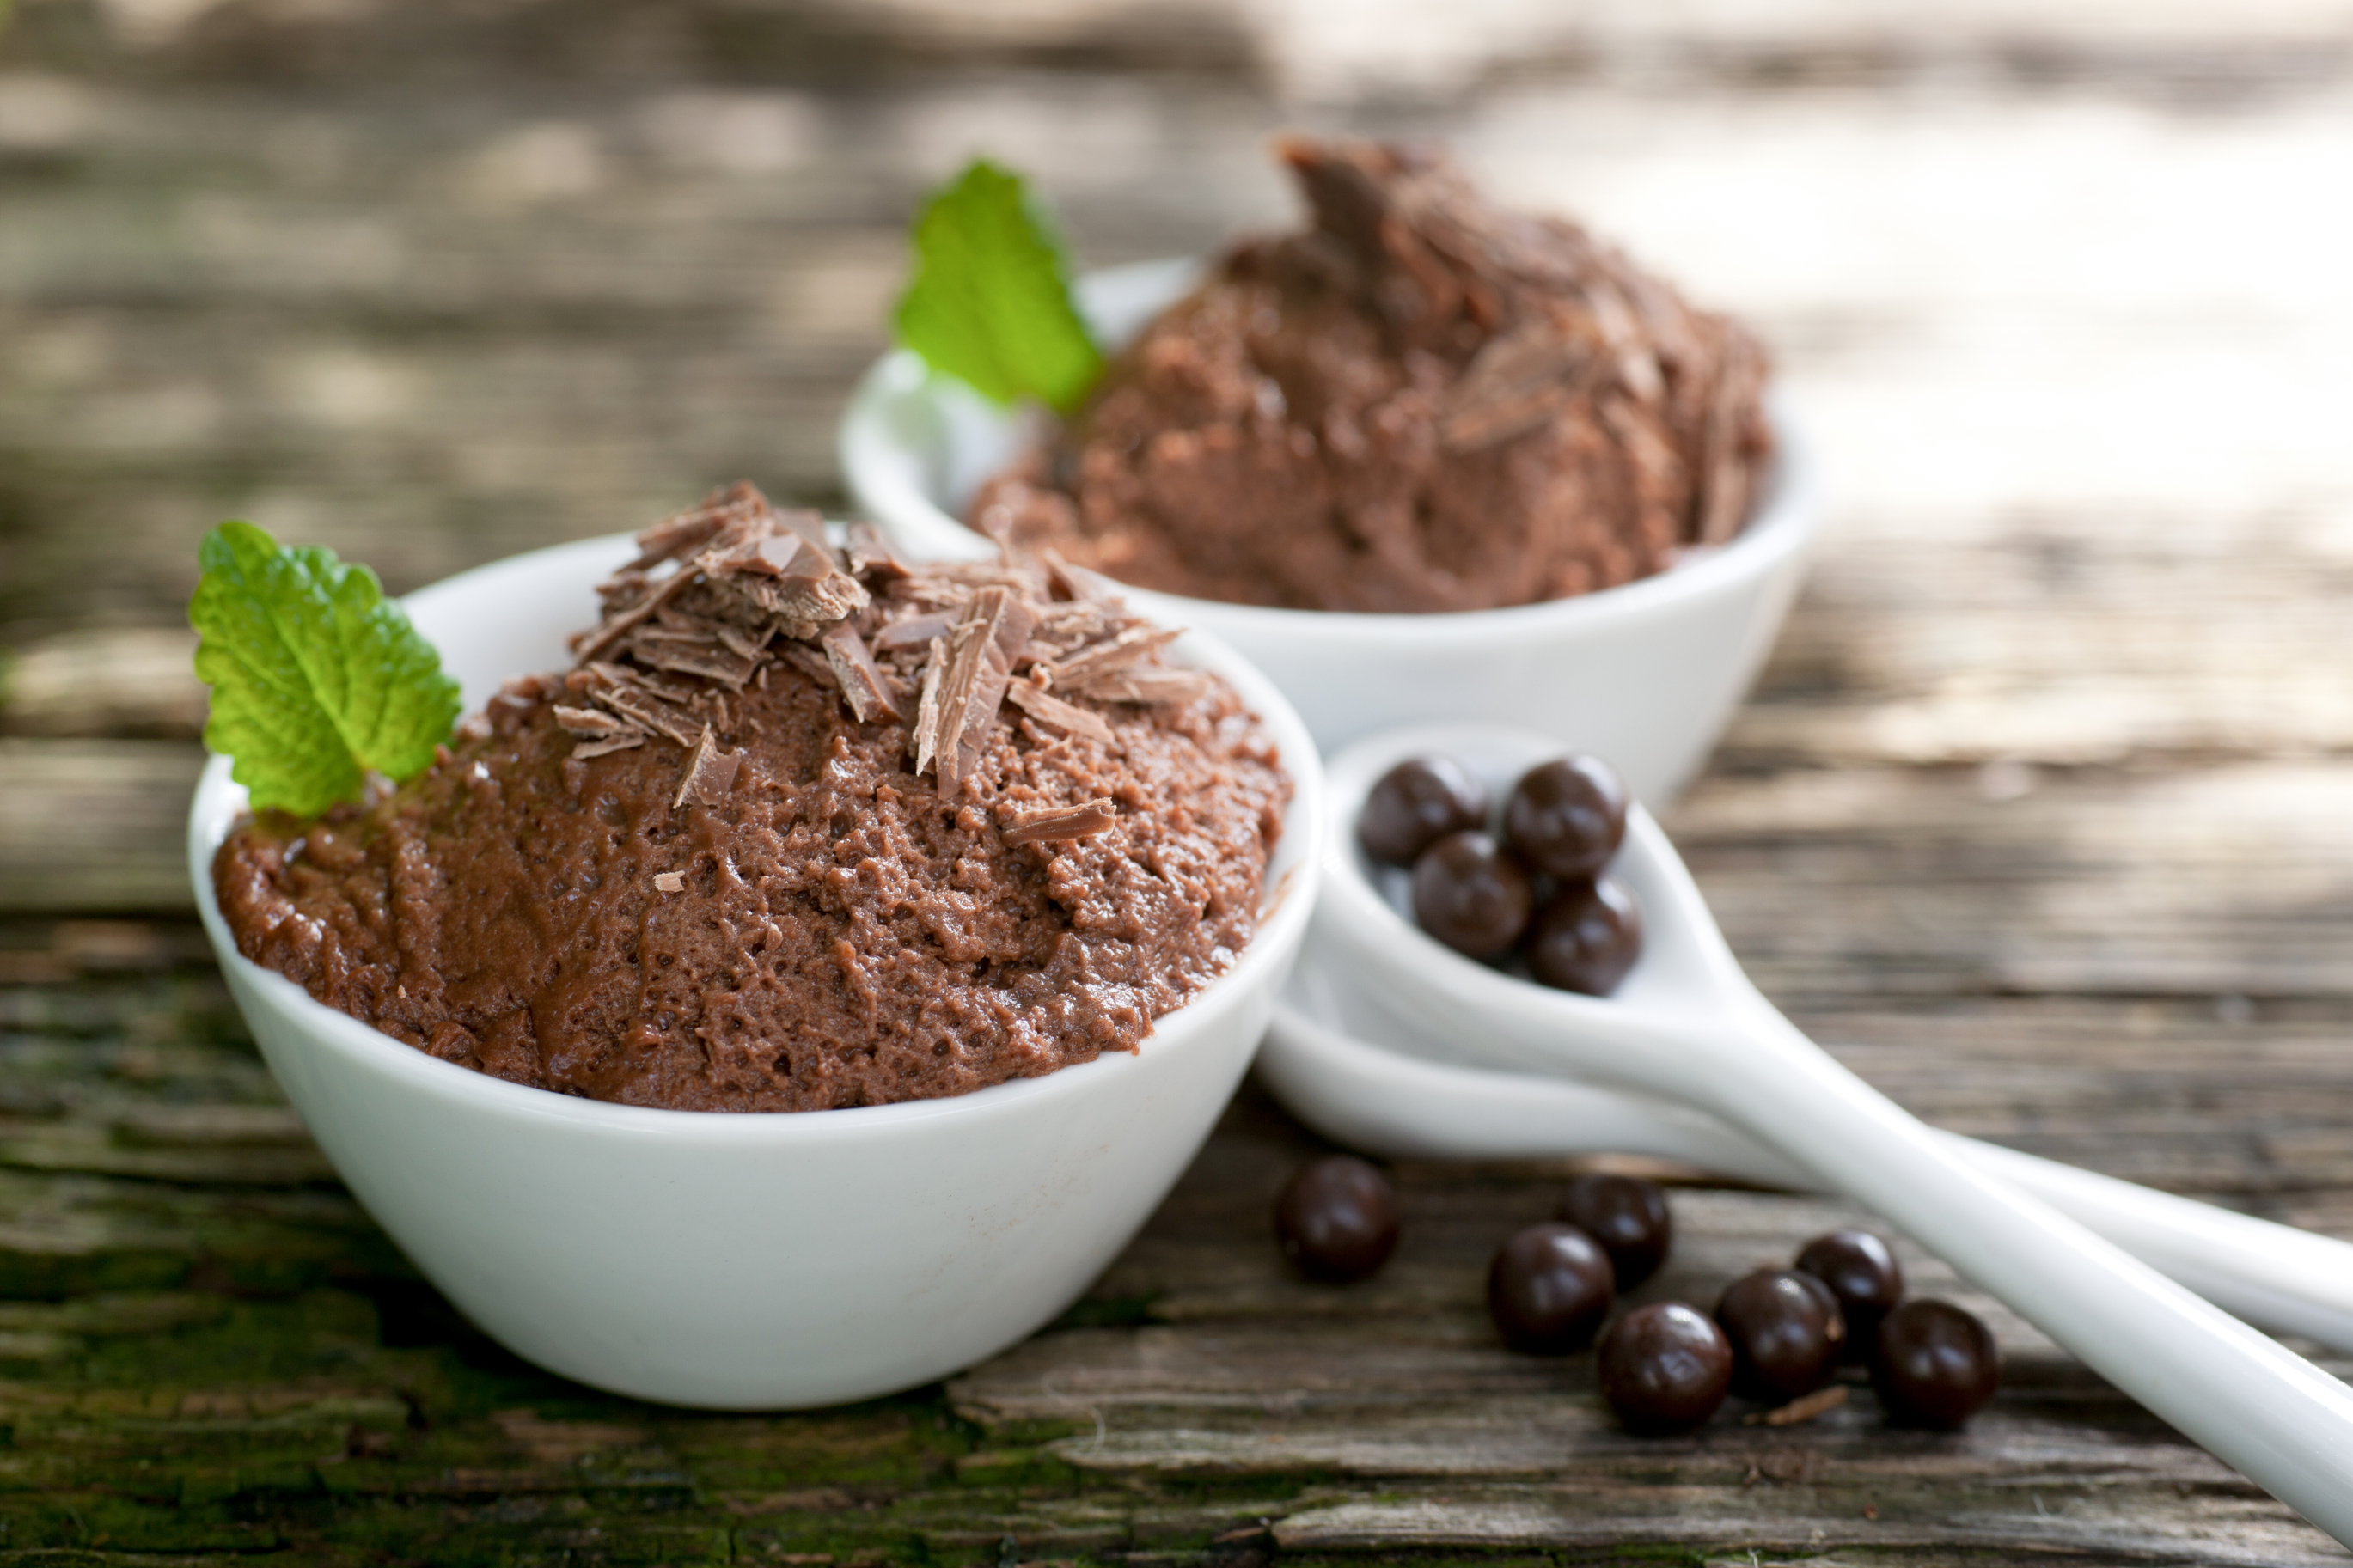 Chocolate Mousse Caribbean